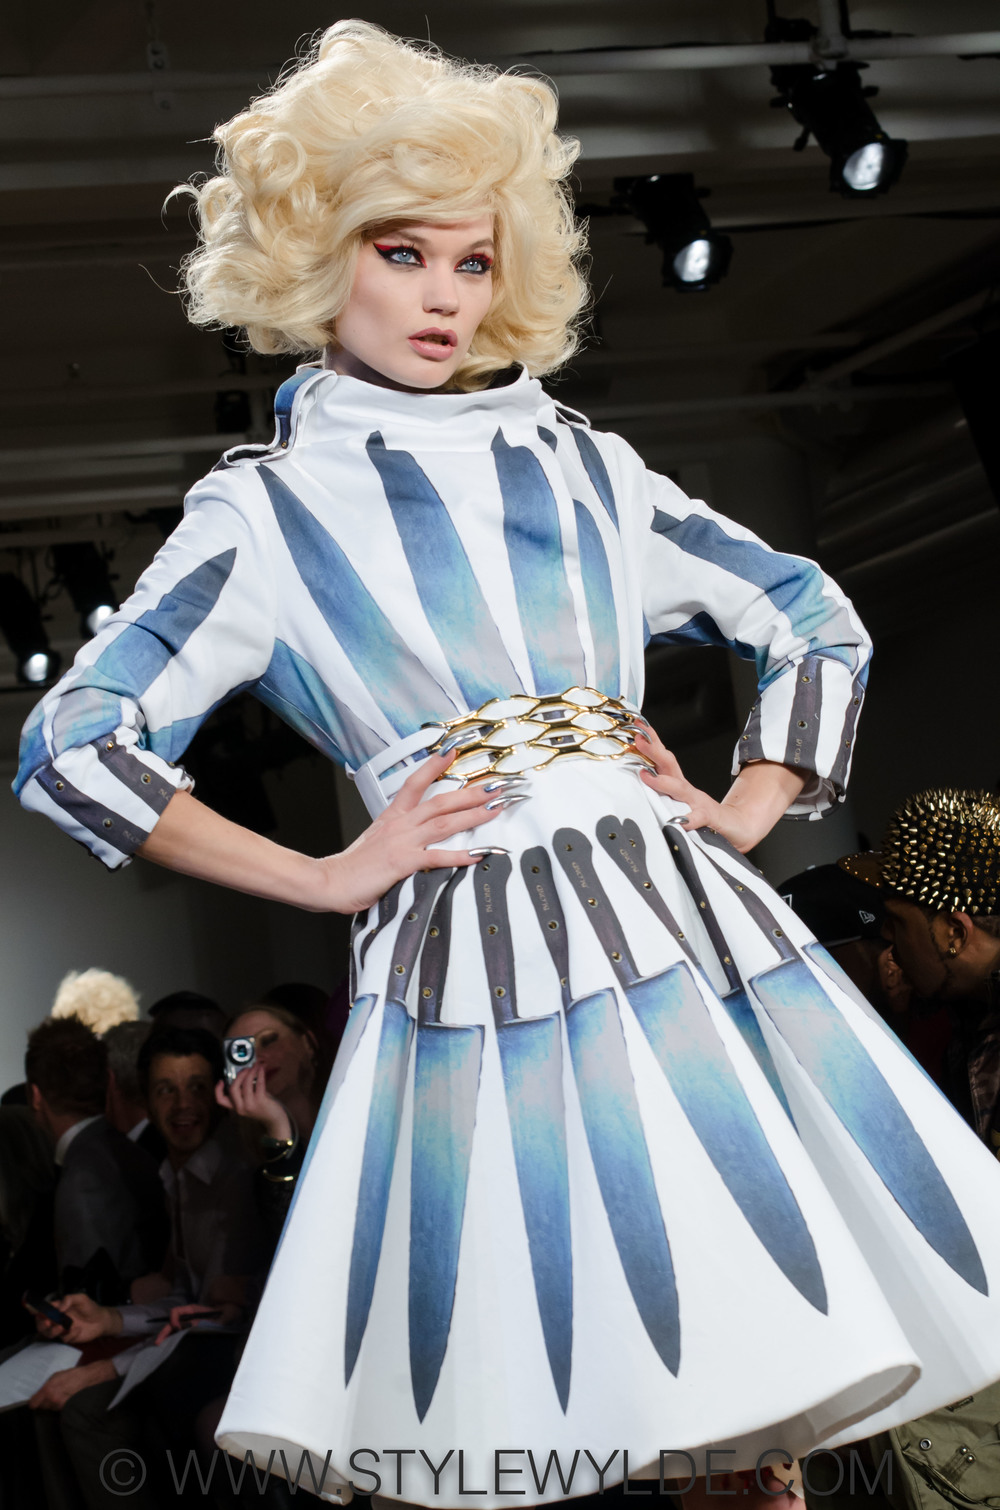 stylewylde_The_Blonds_FW_2013-9.jpg